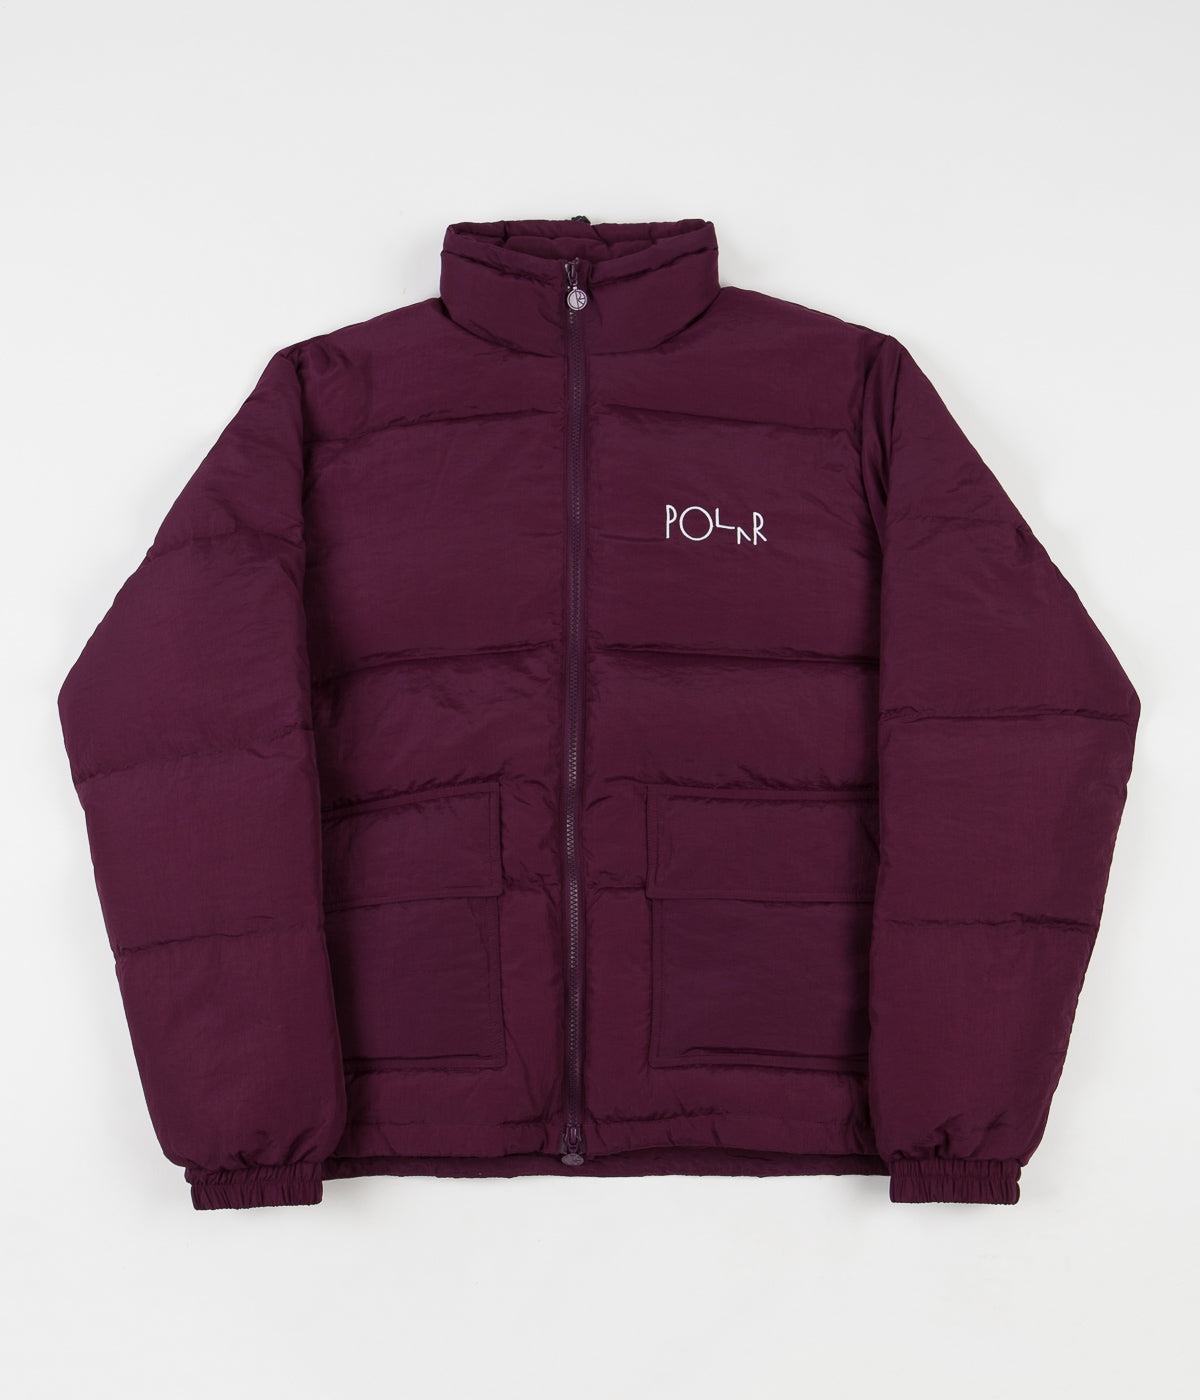 Polar Pocket Puffer Jacket - Prune